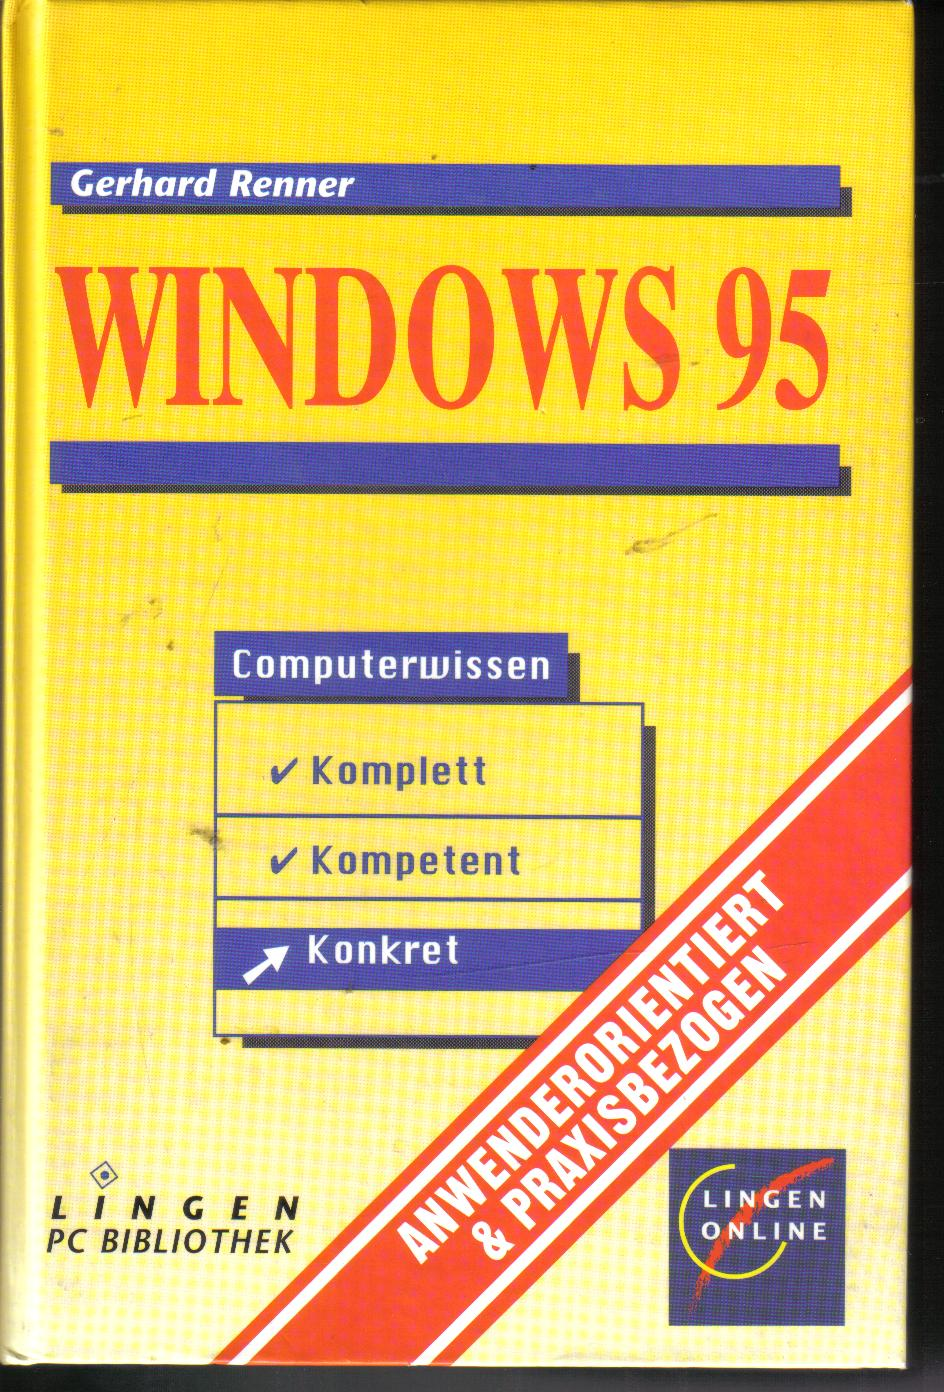 Windows 95Gerhard Renner